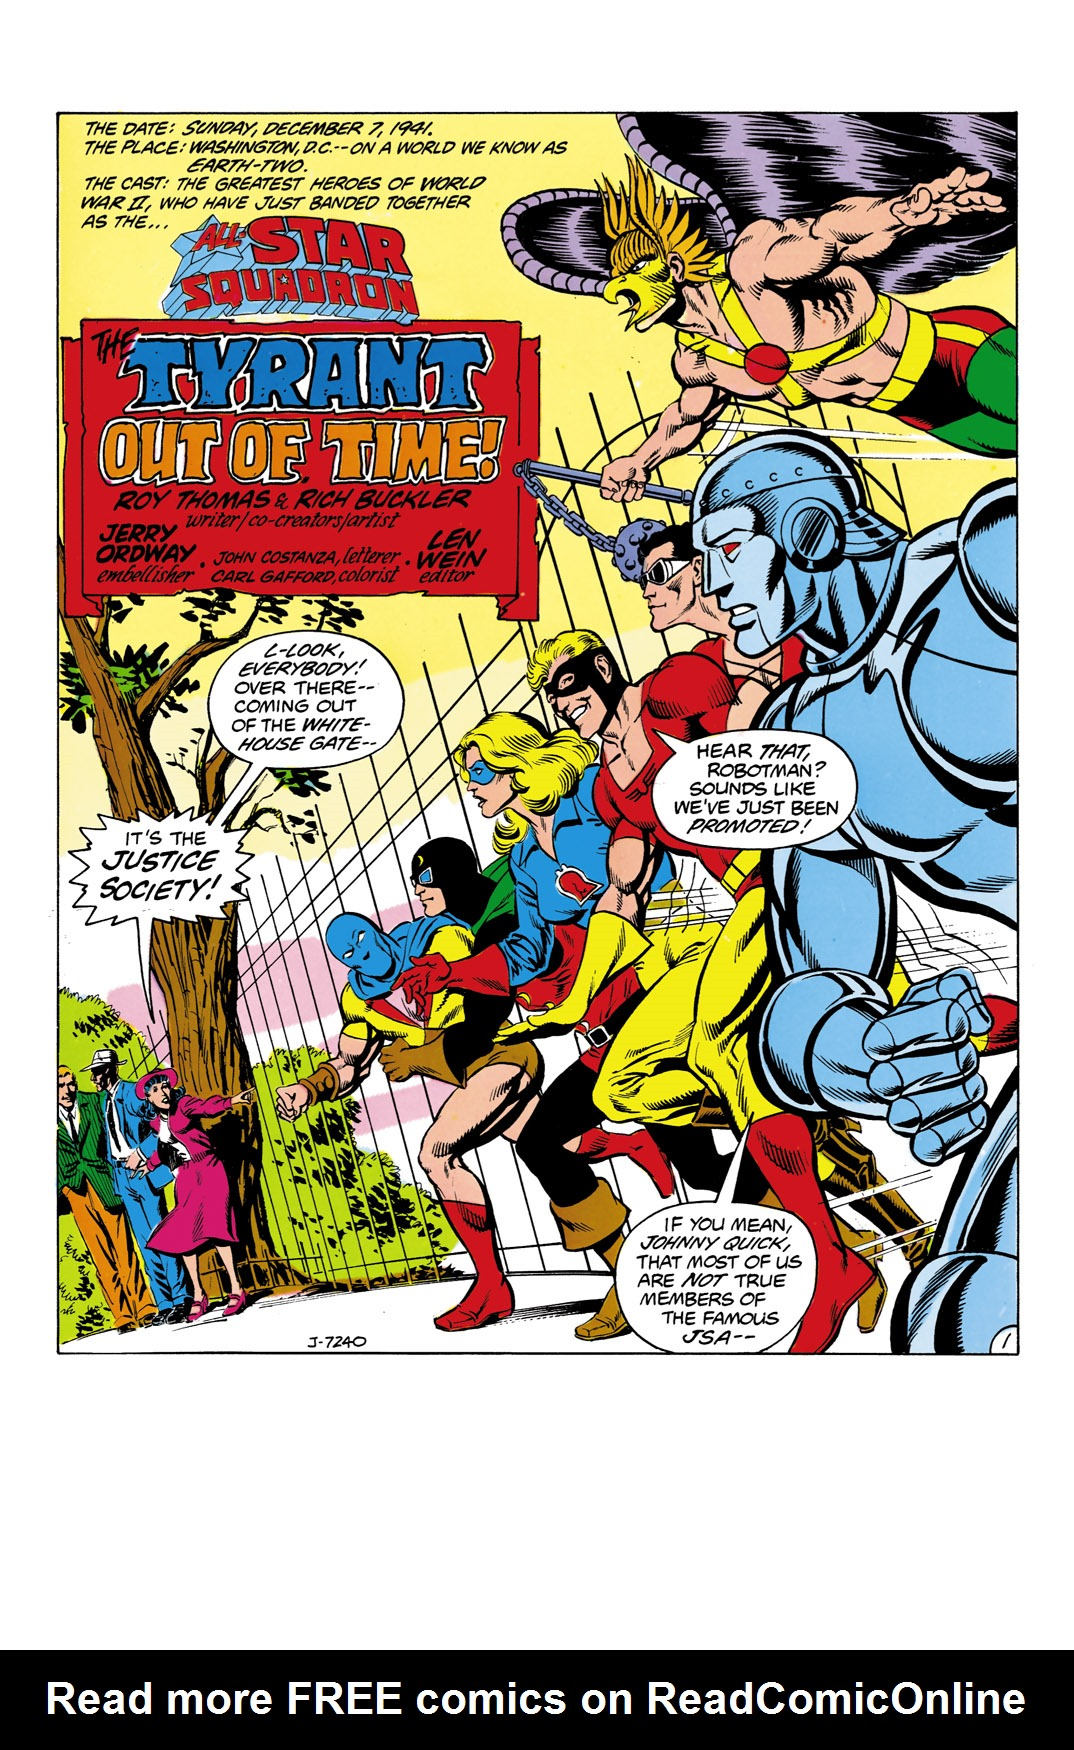 Read online All-Star Squadron comic -  Issue #2 - 2